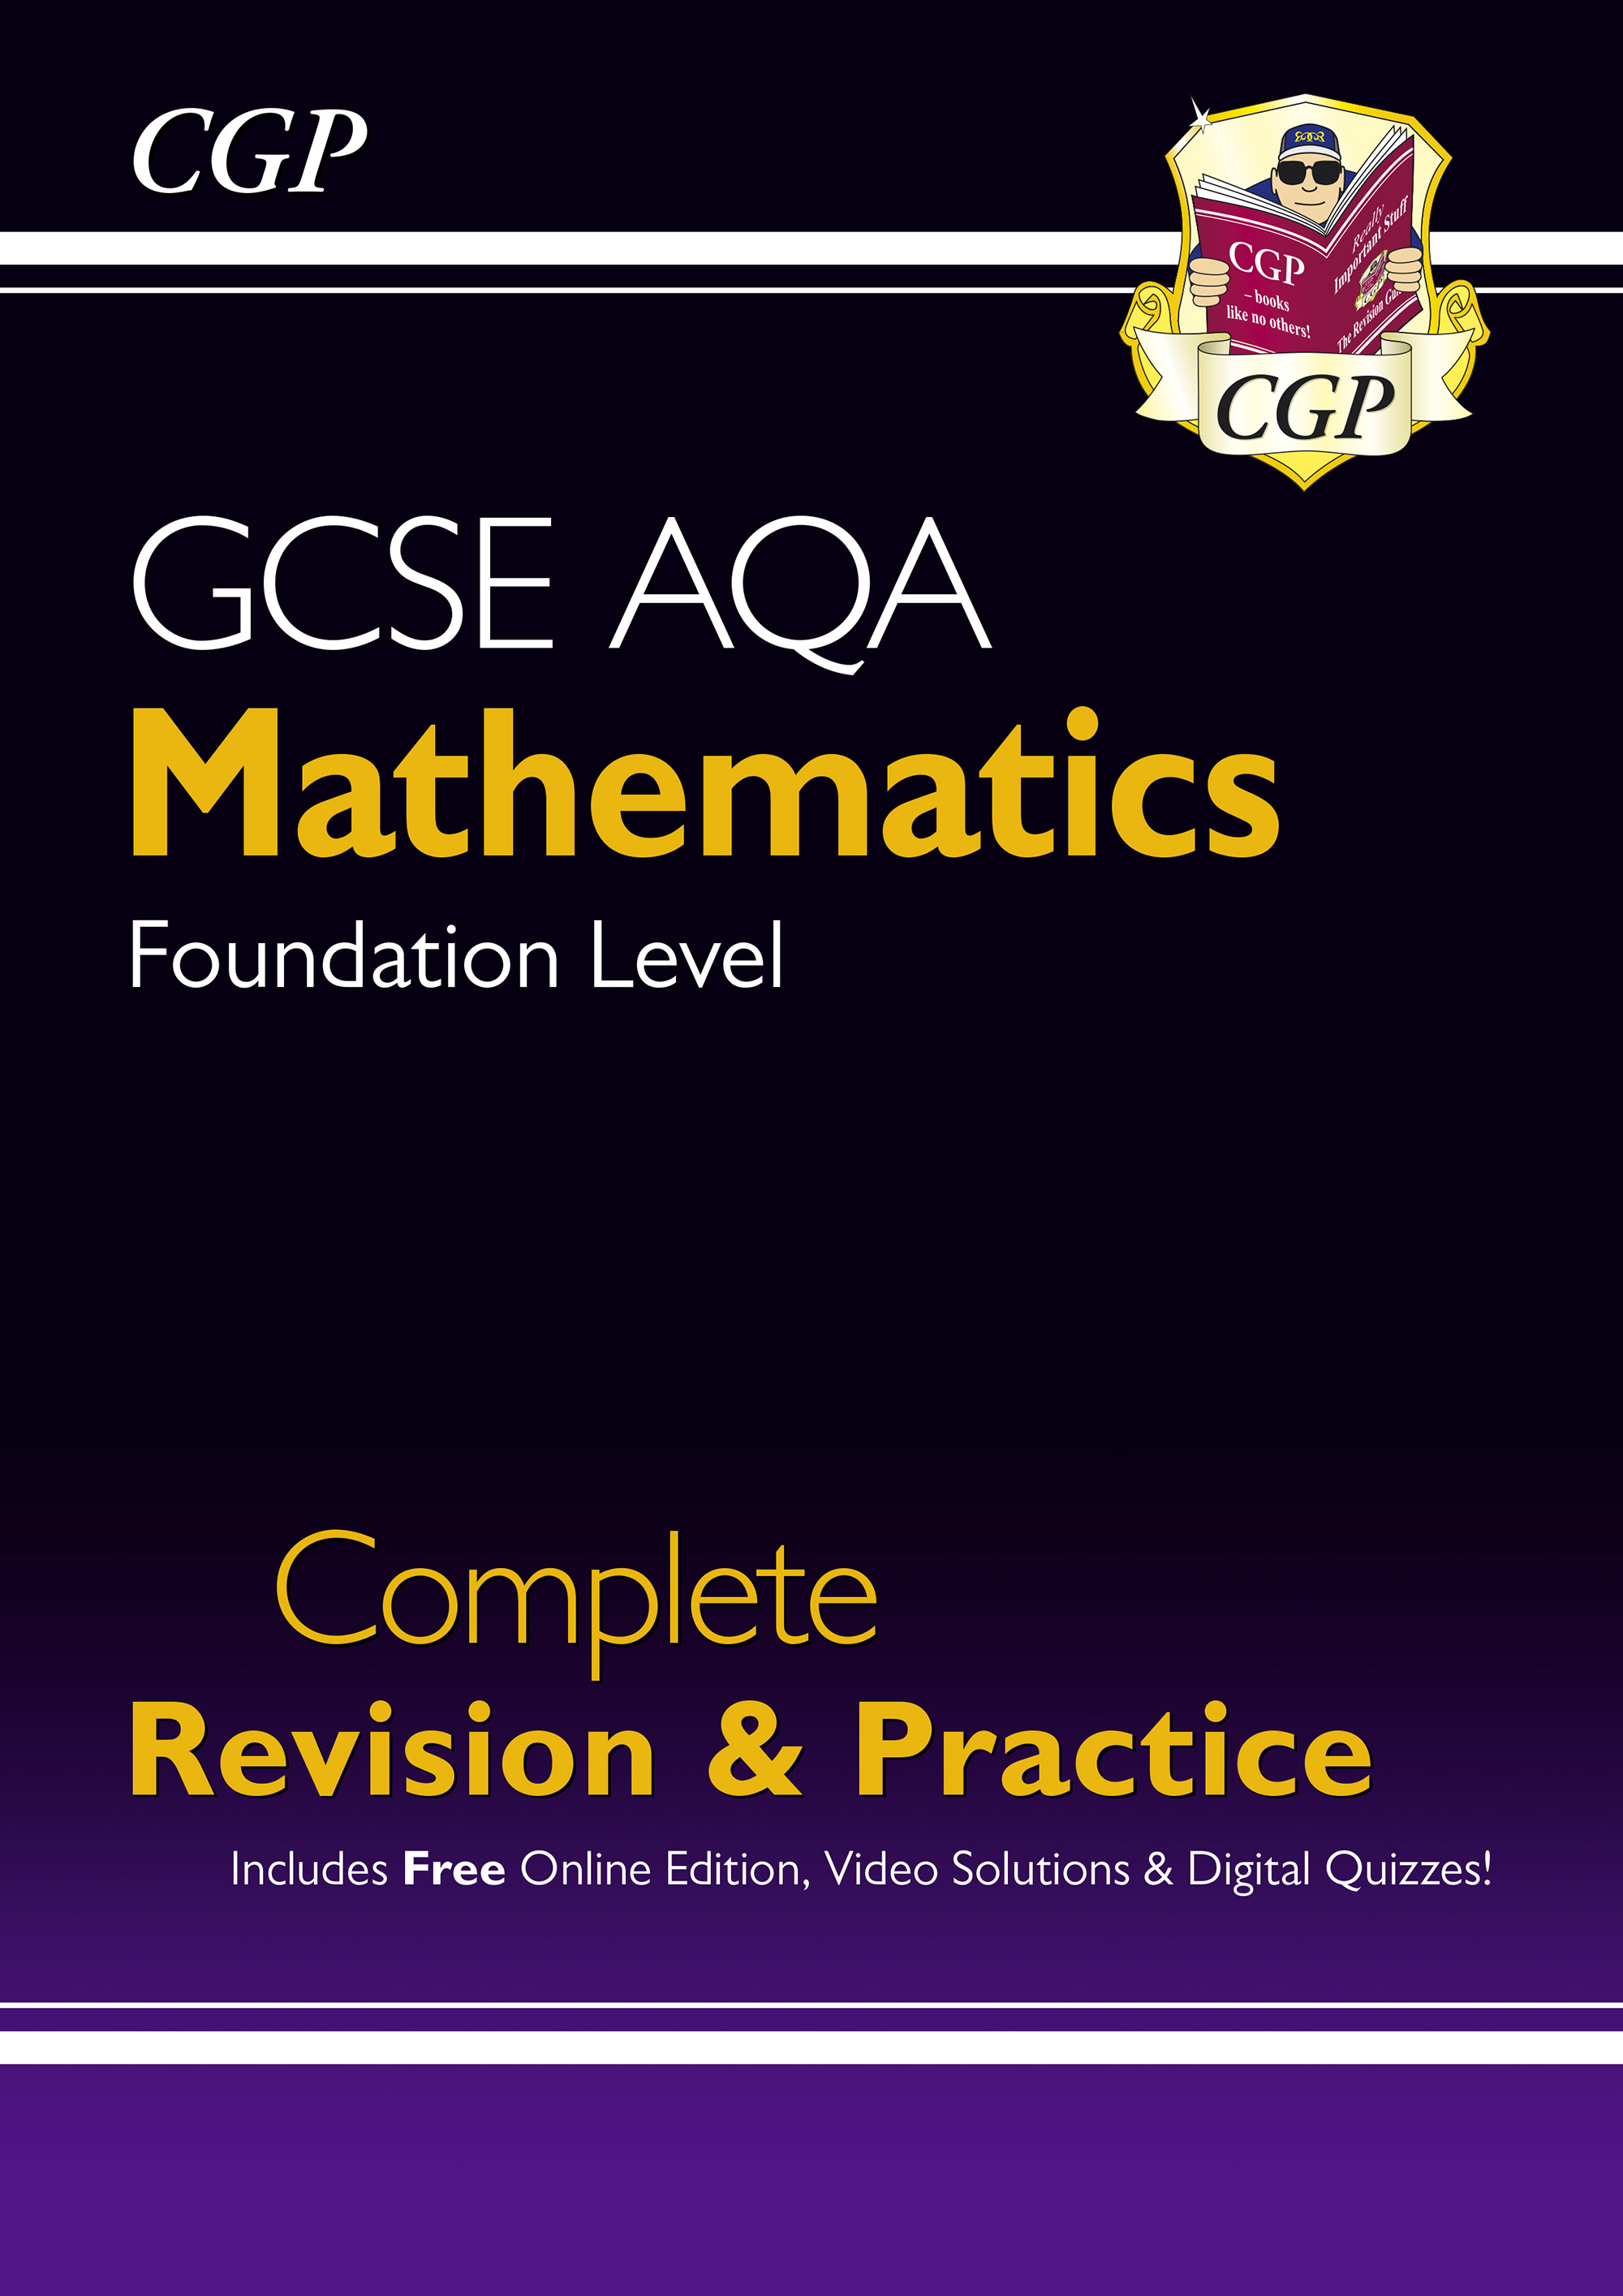 MQFS42DK - New 2021 GCSE Maths AQA Complete Revision & Practice: Foundation inc Videos & Quizzes